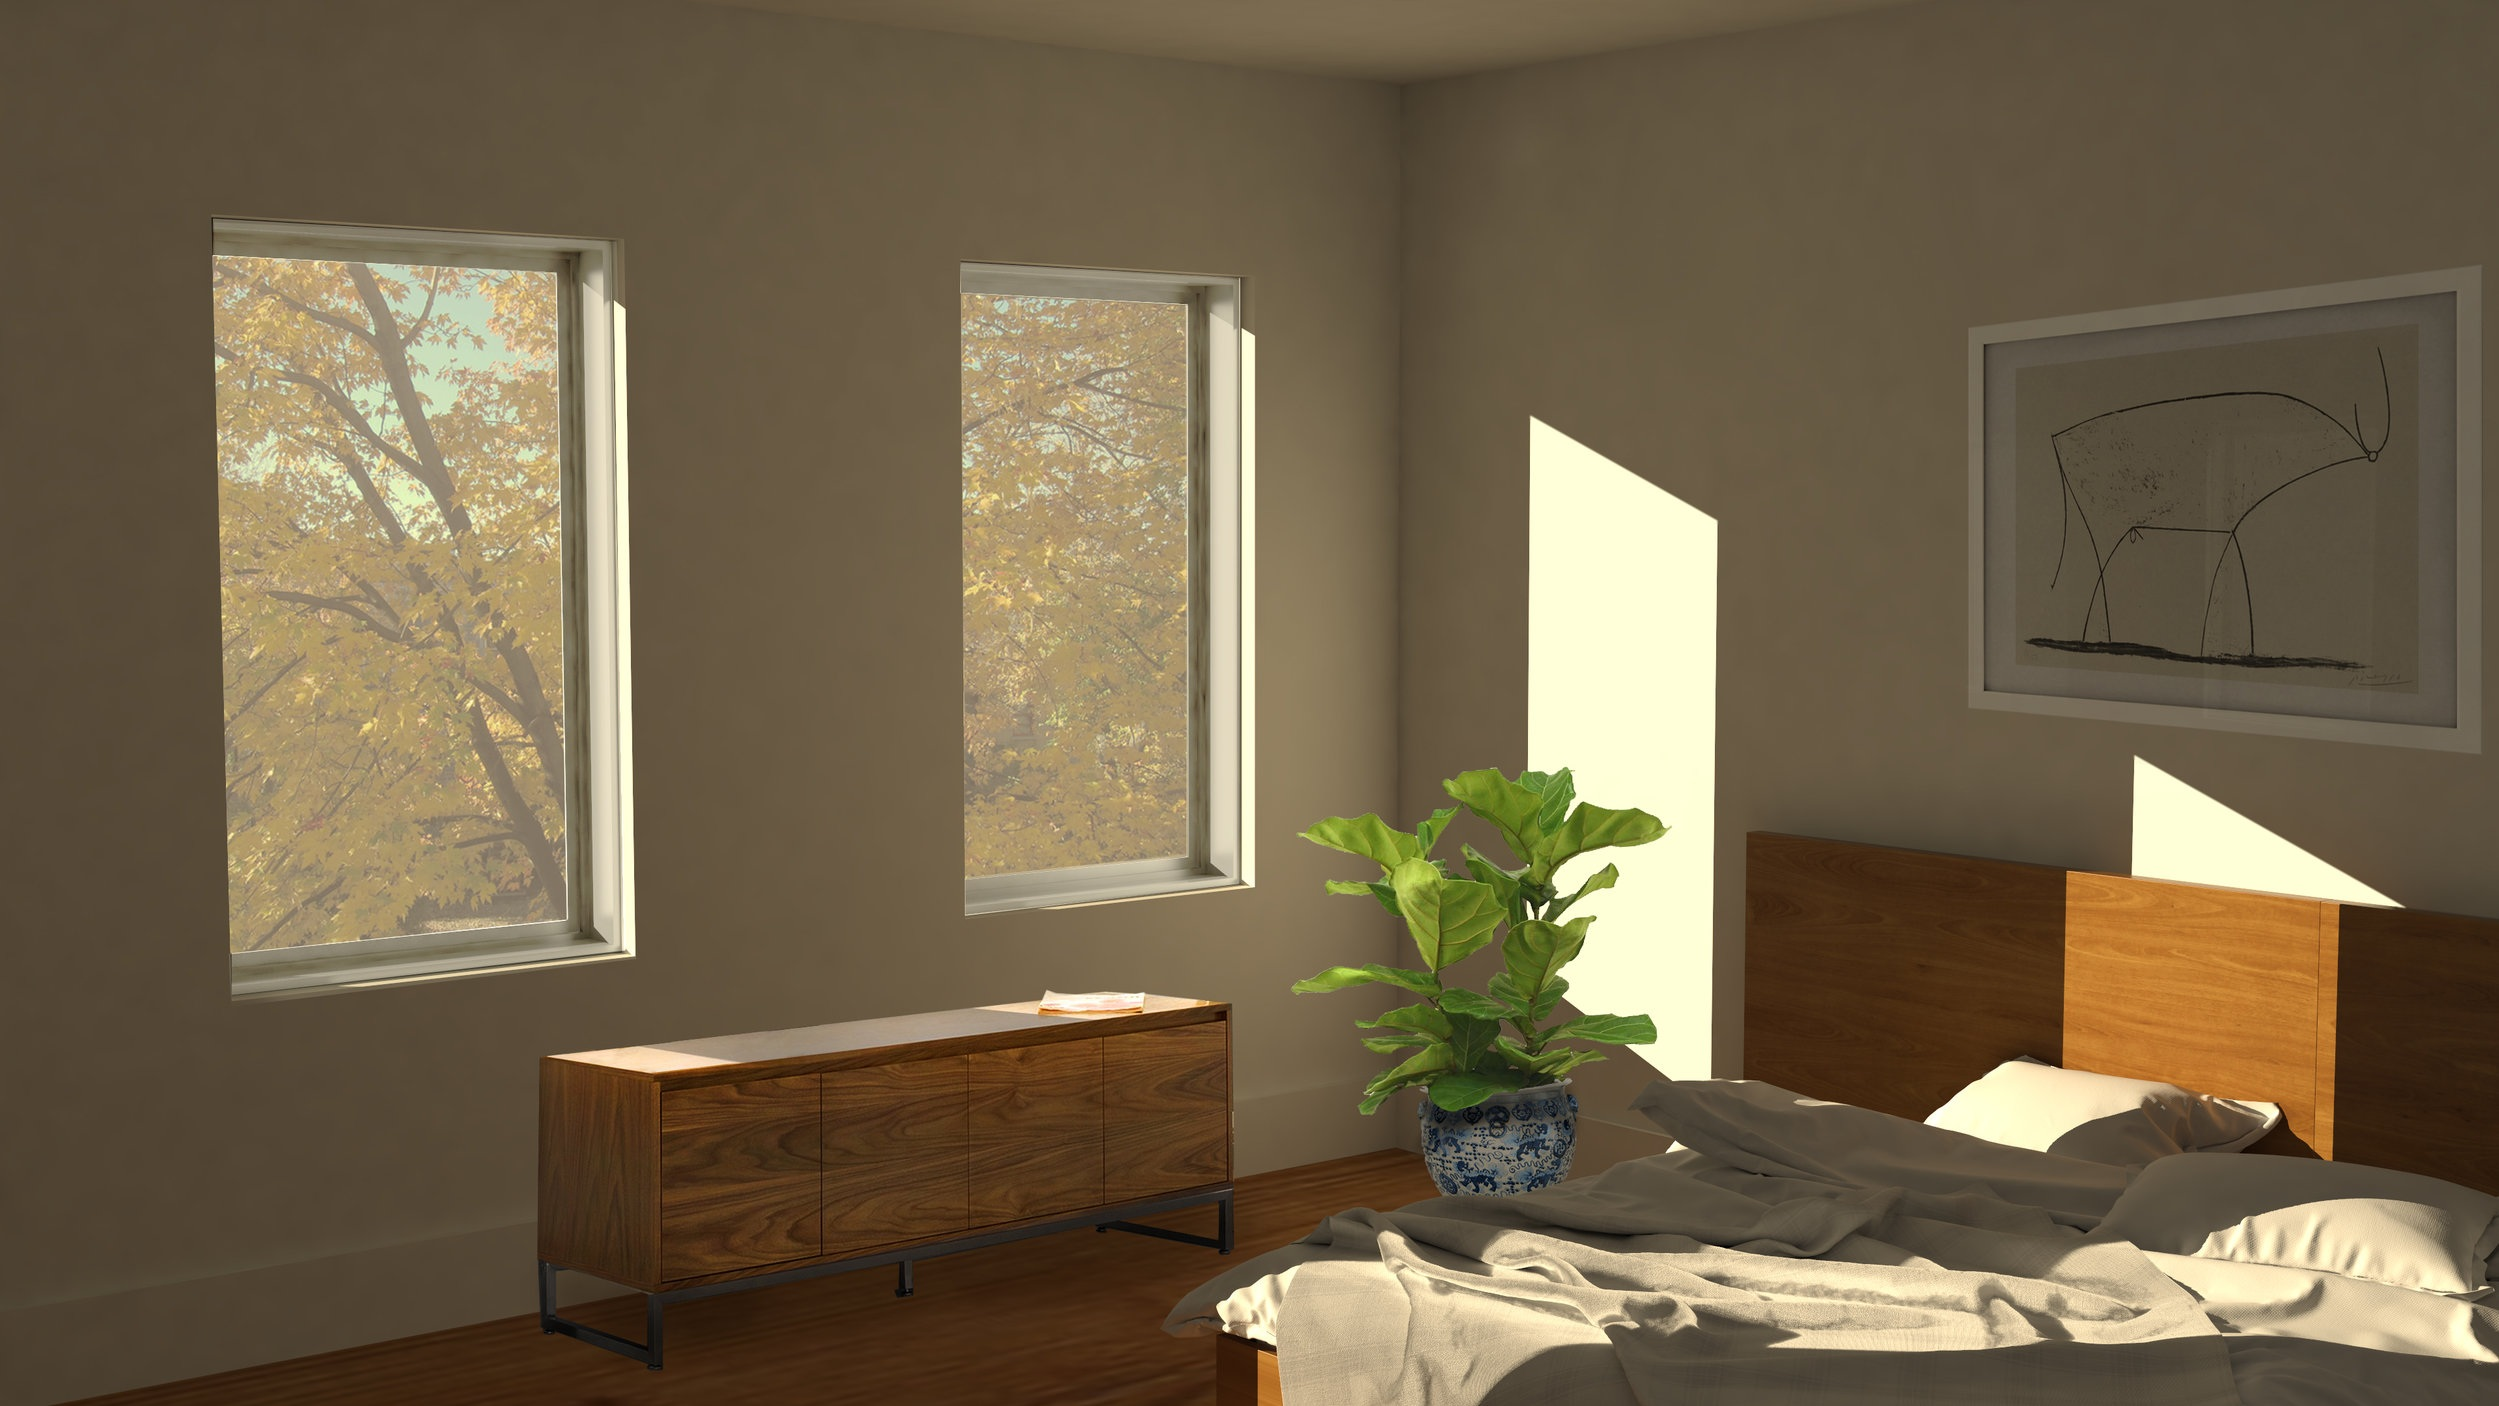 052517_haynes-bedroom.jpg